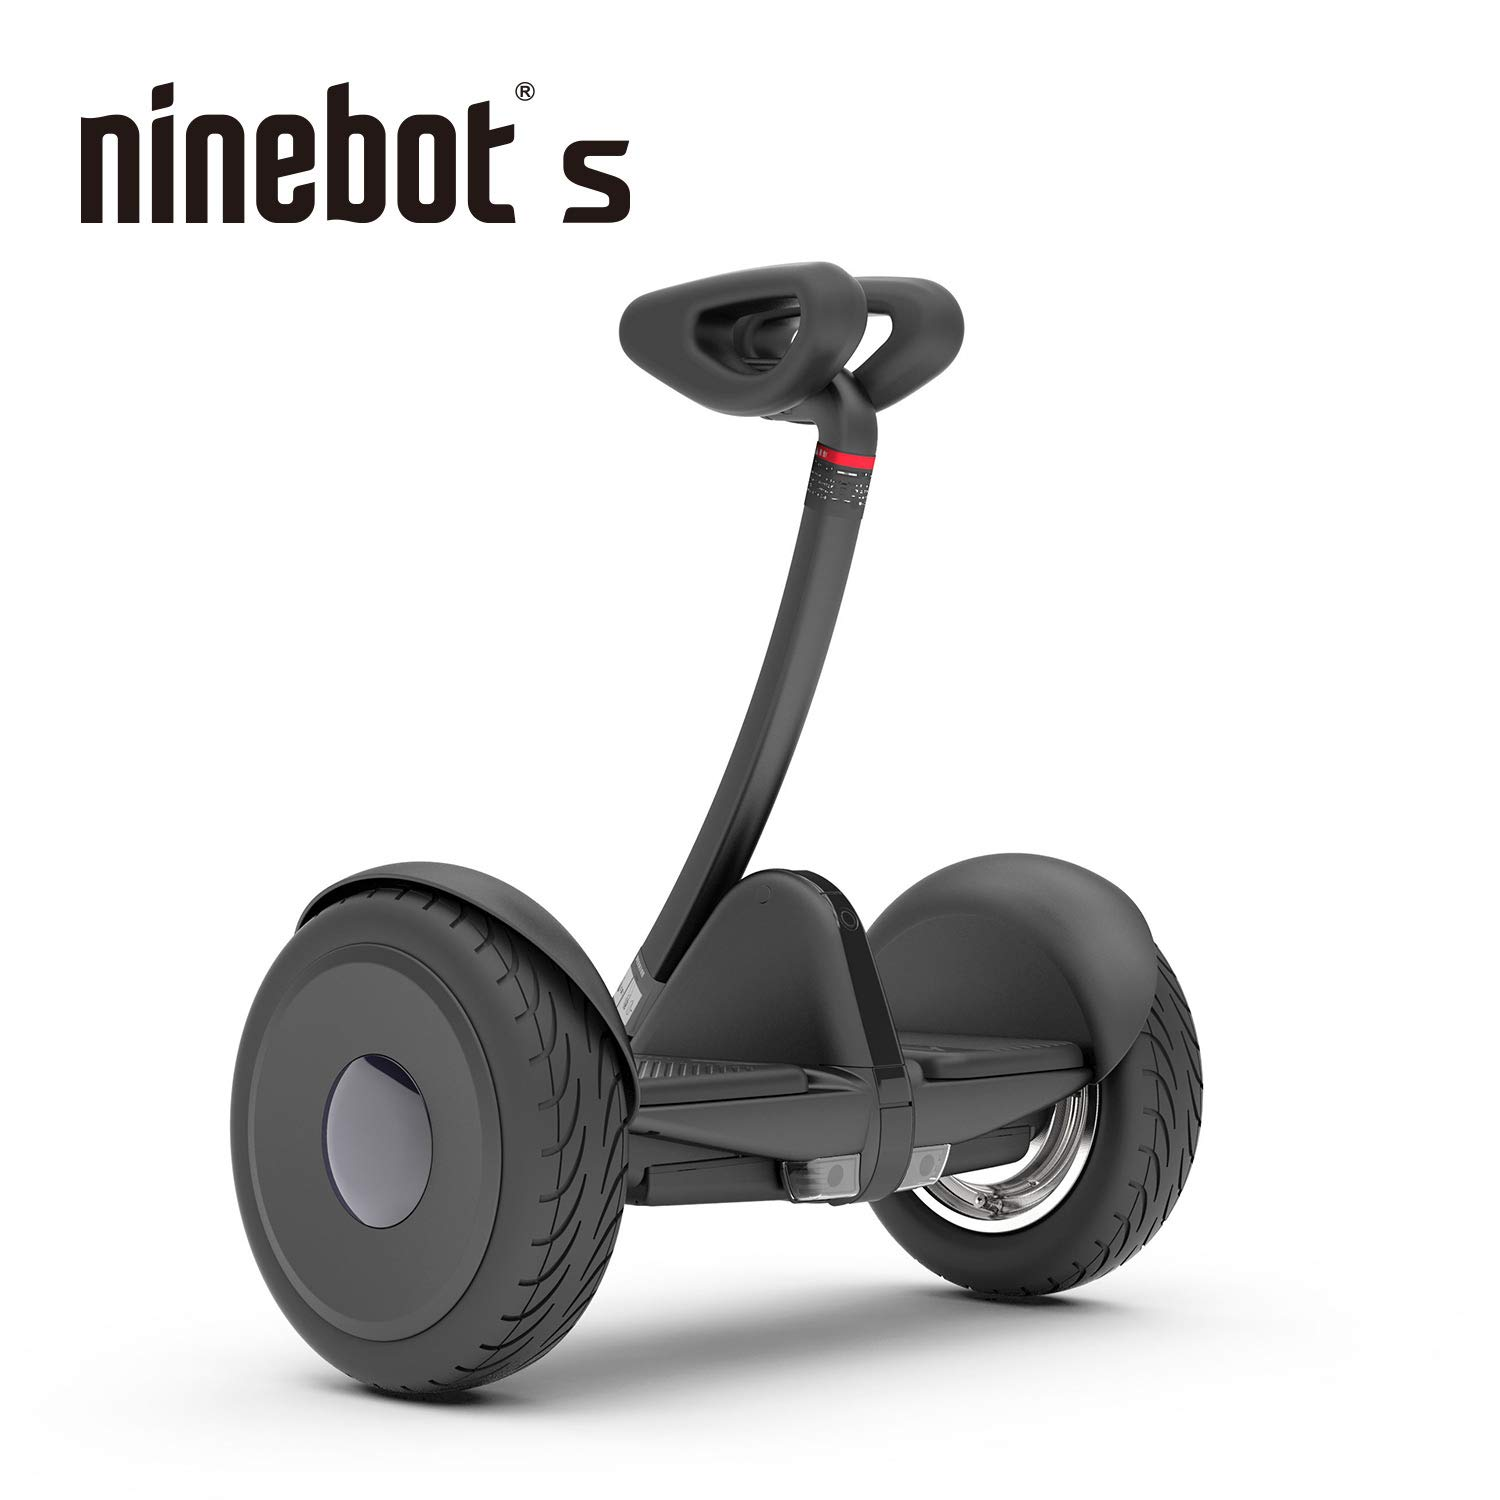 Segway Ninebot S Smart Self-Balancing Electric Transporter